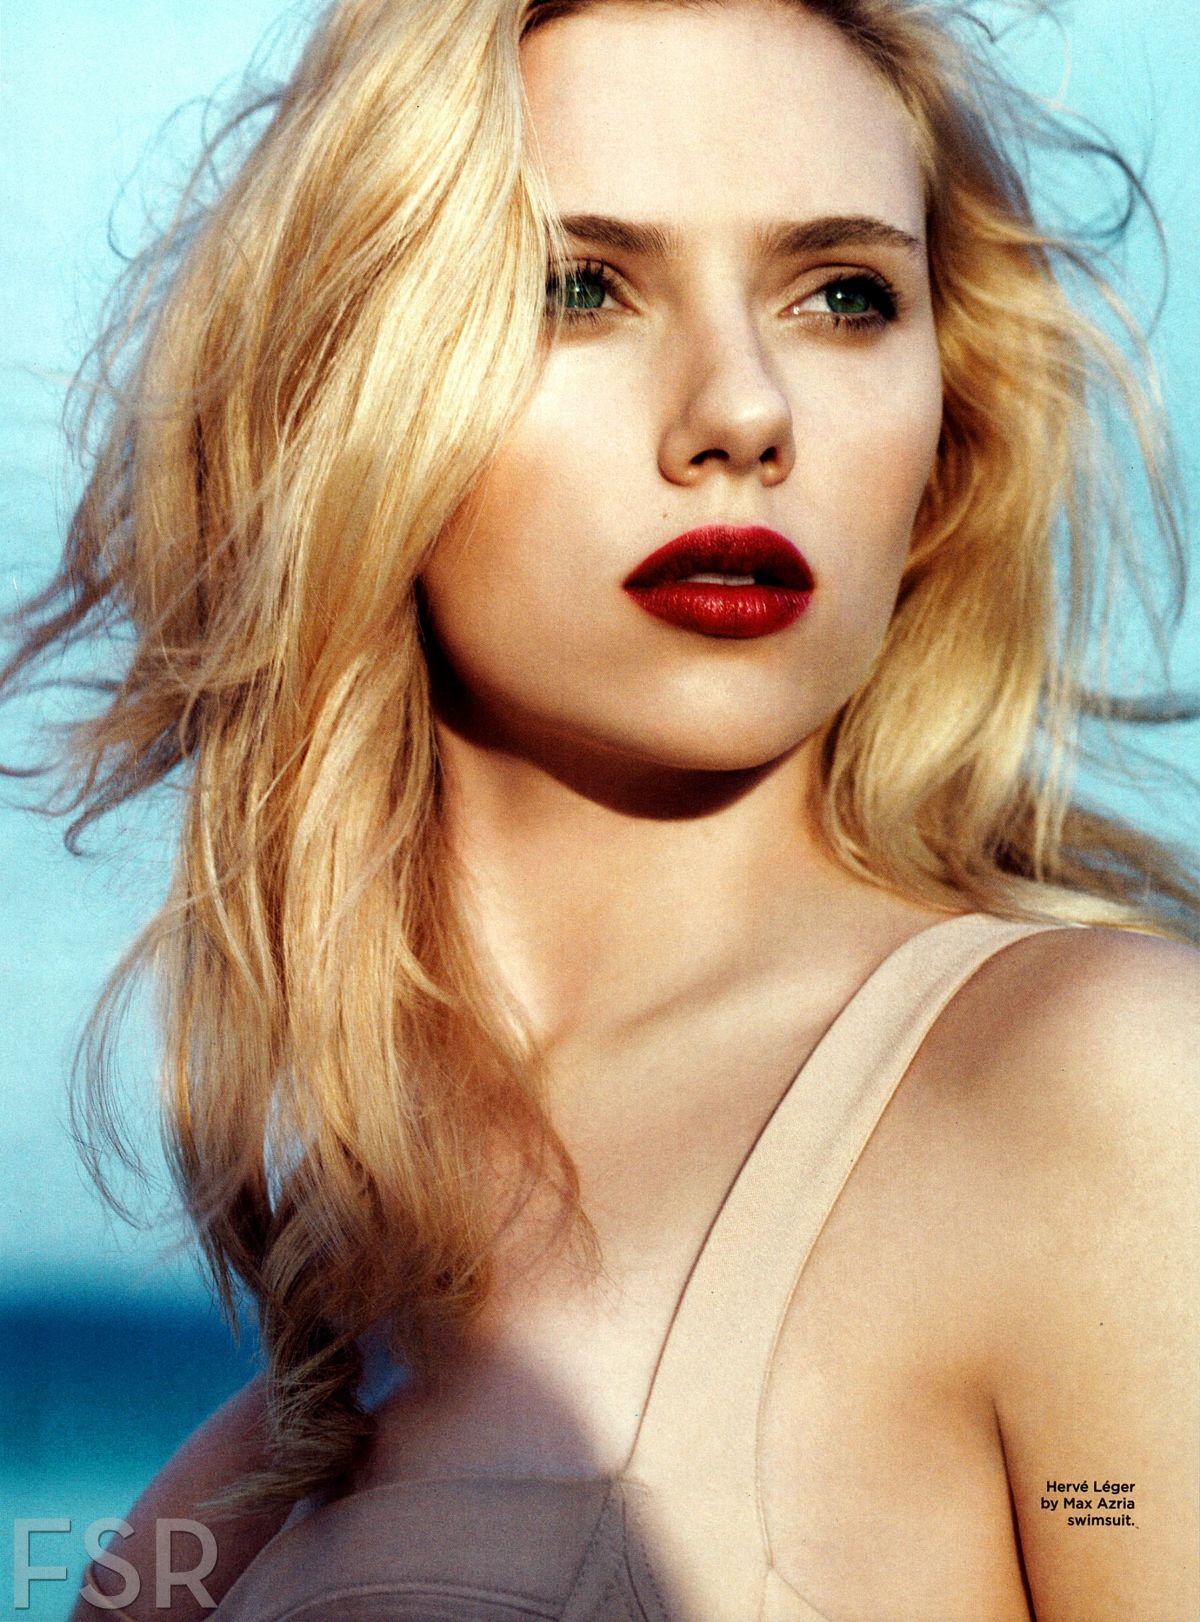 Scarlett Johansson to get 25m for Black Widow film